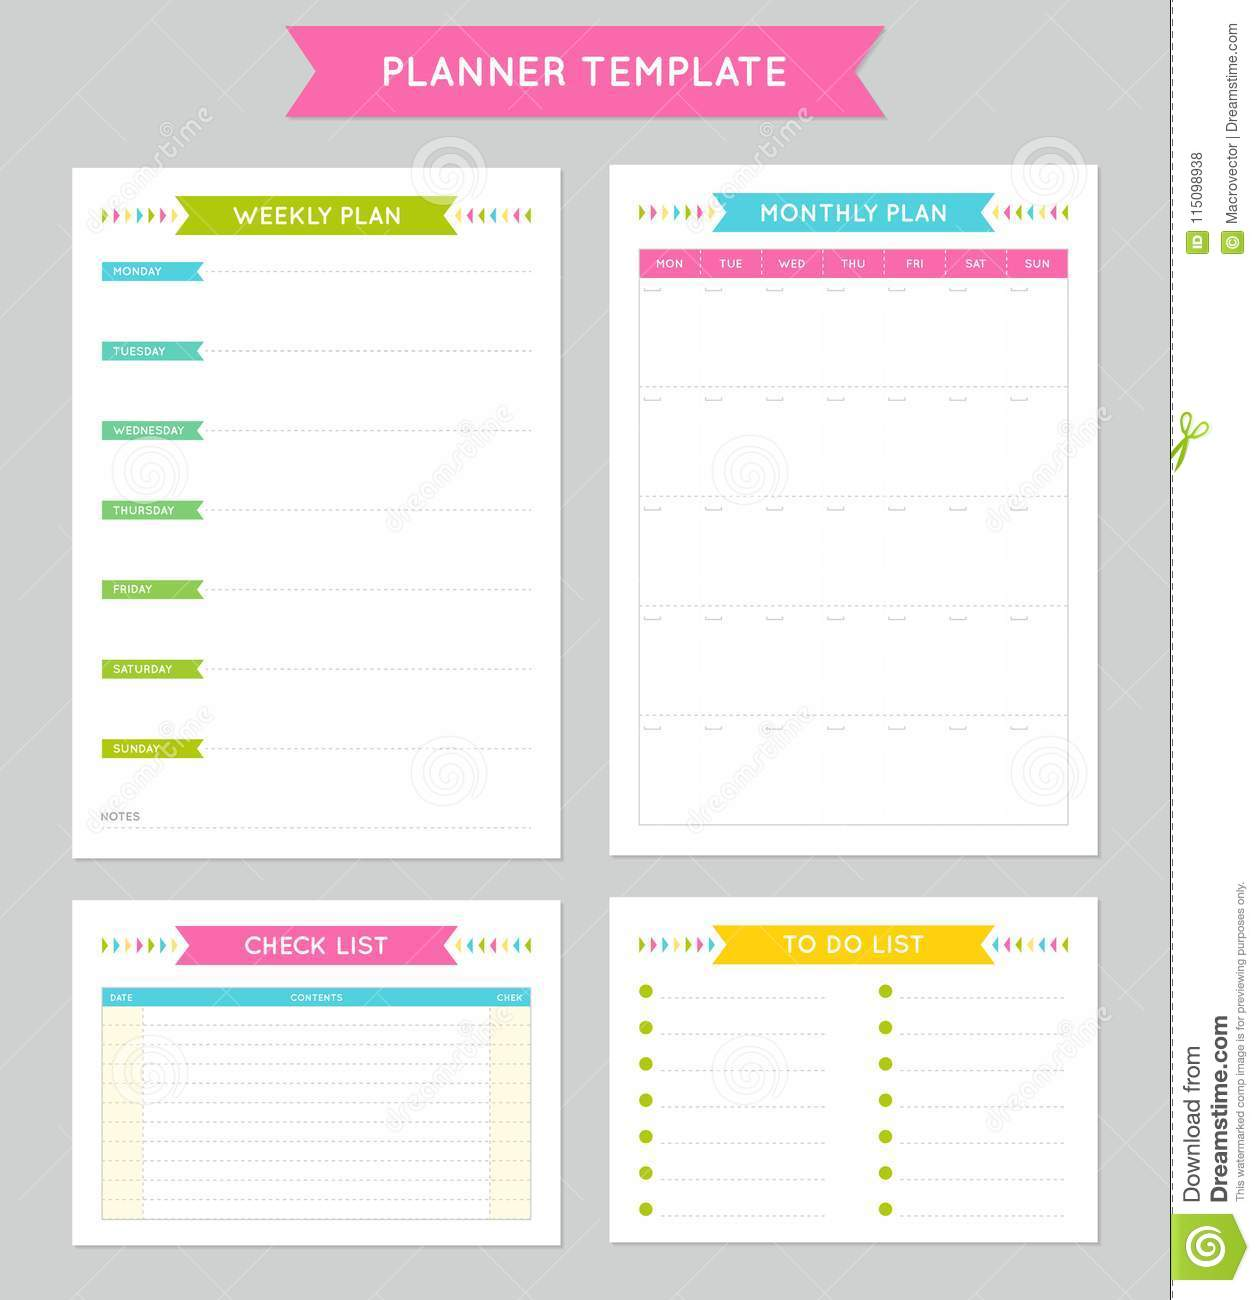 download planner template for business and studying stock vector illustration of monthly routine